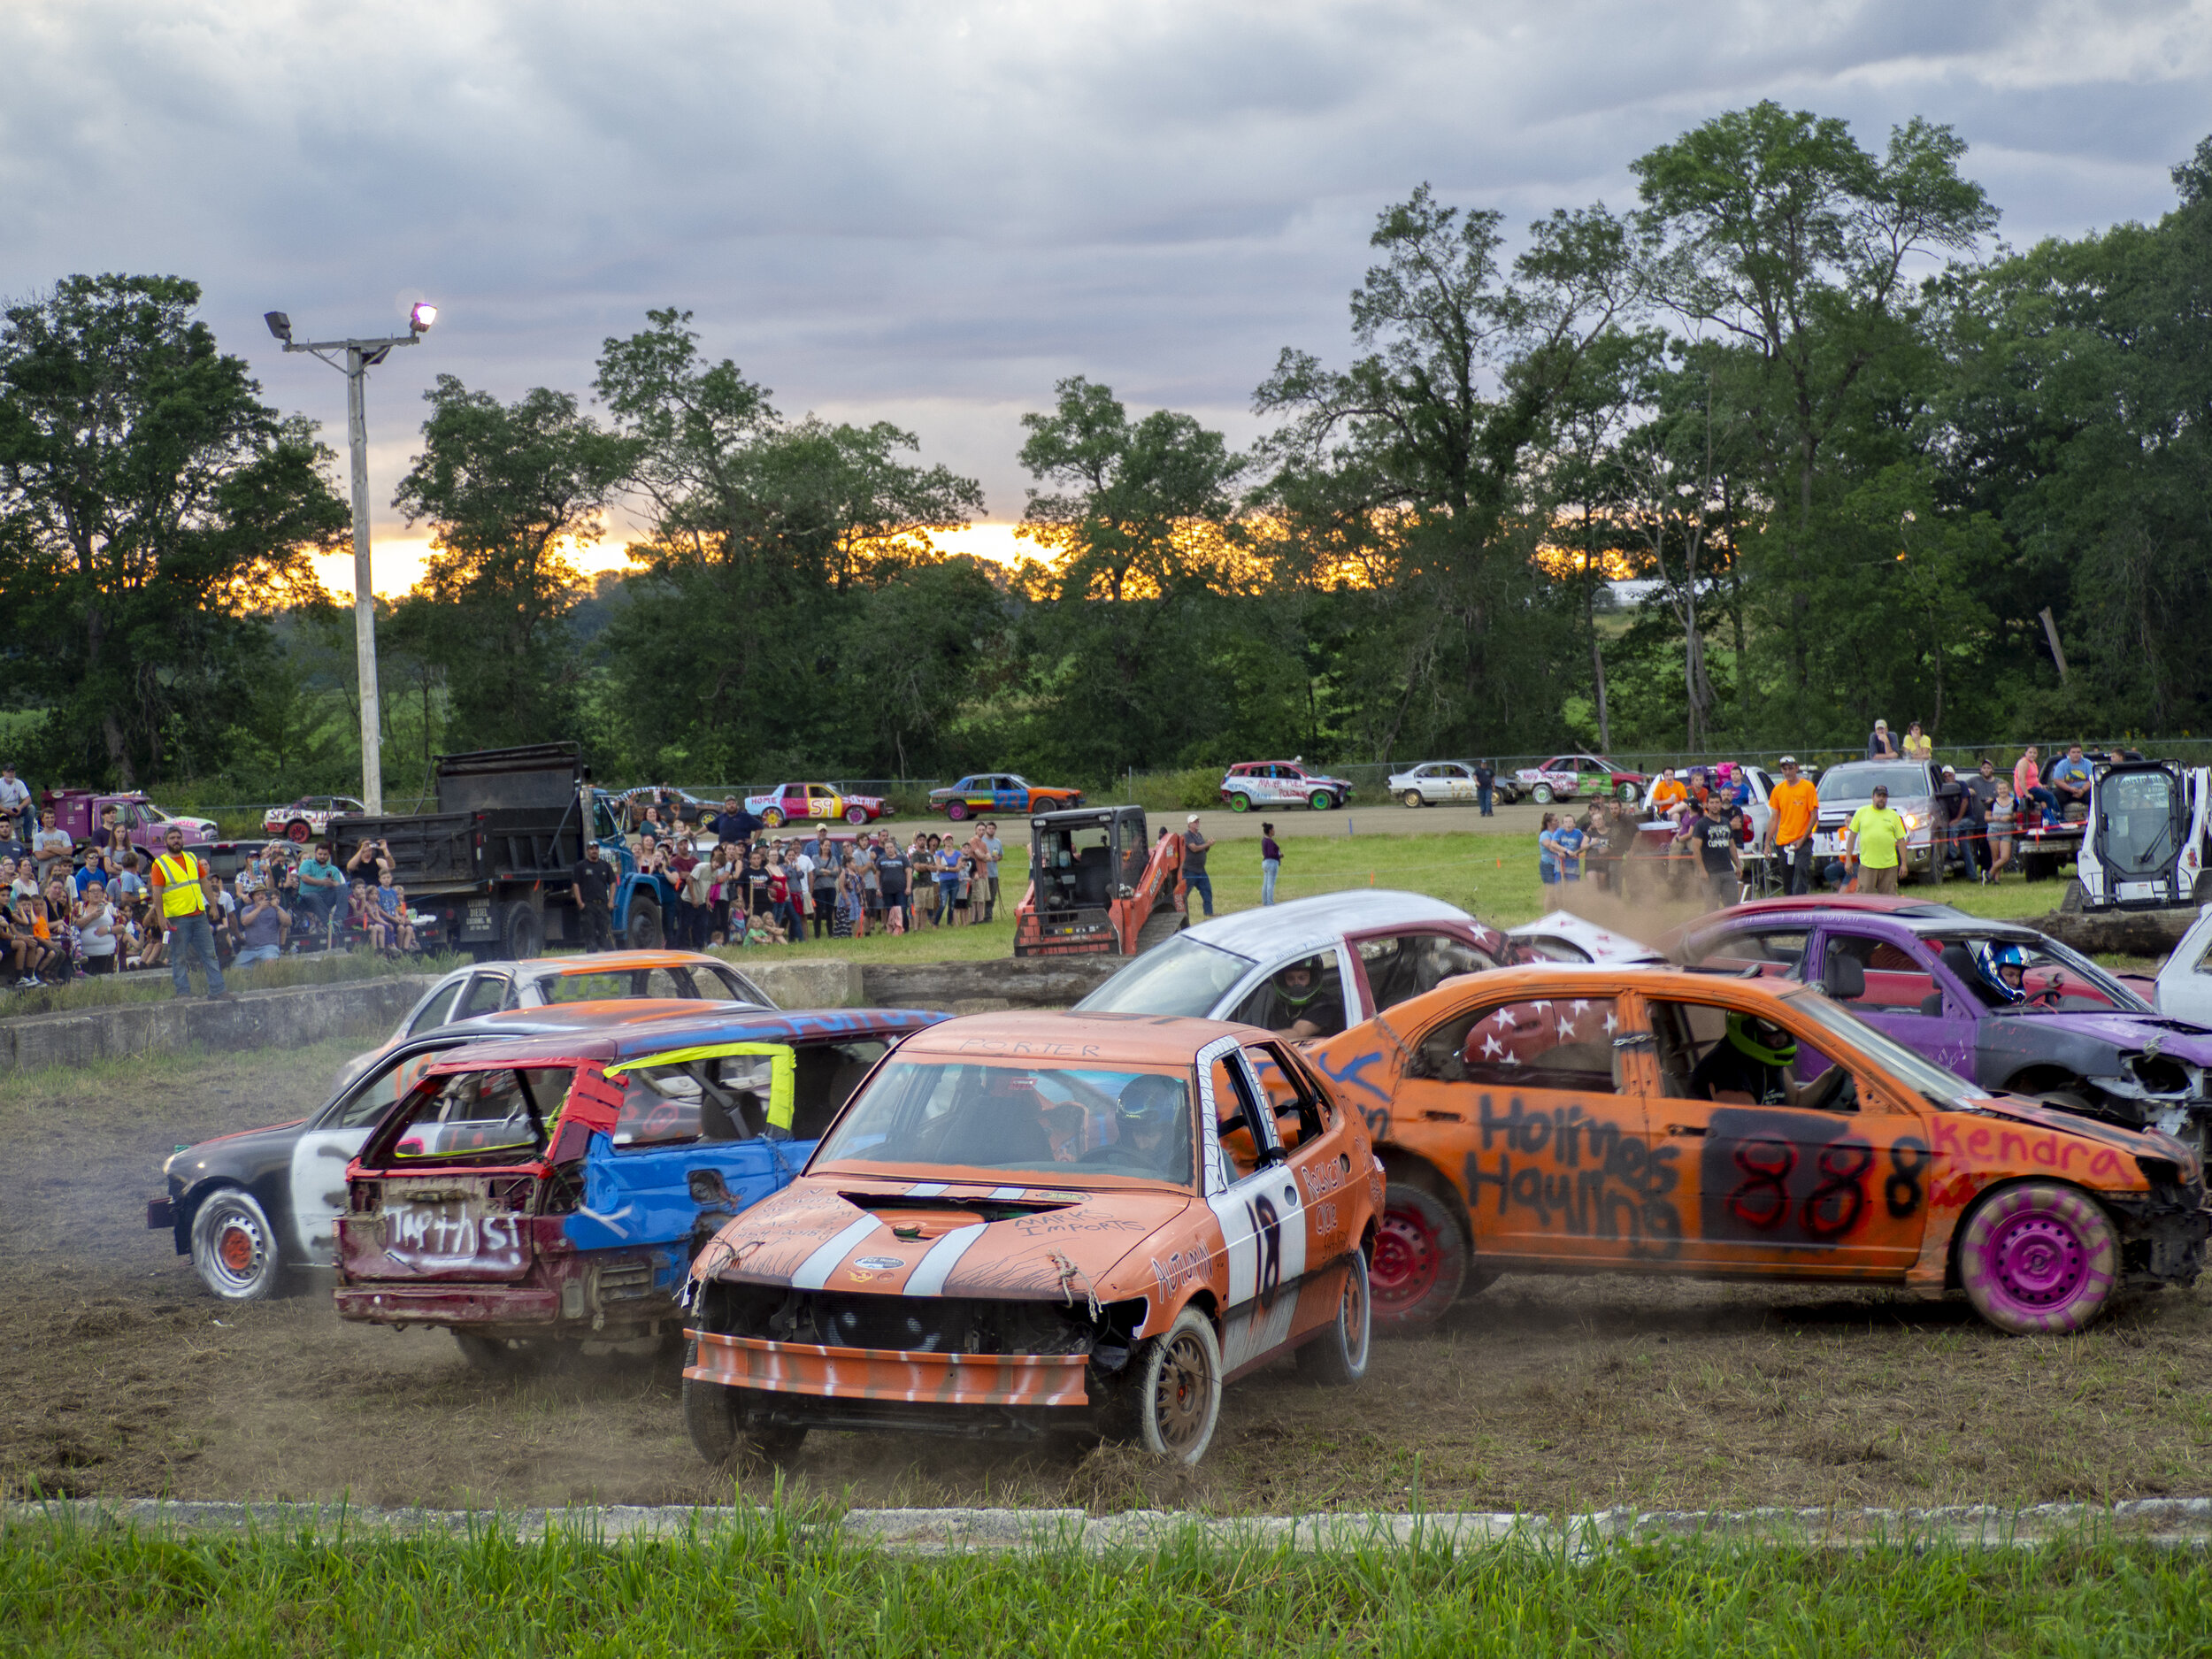 Demo Derby Union Fair